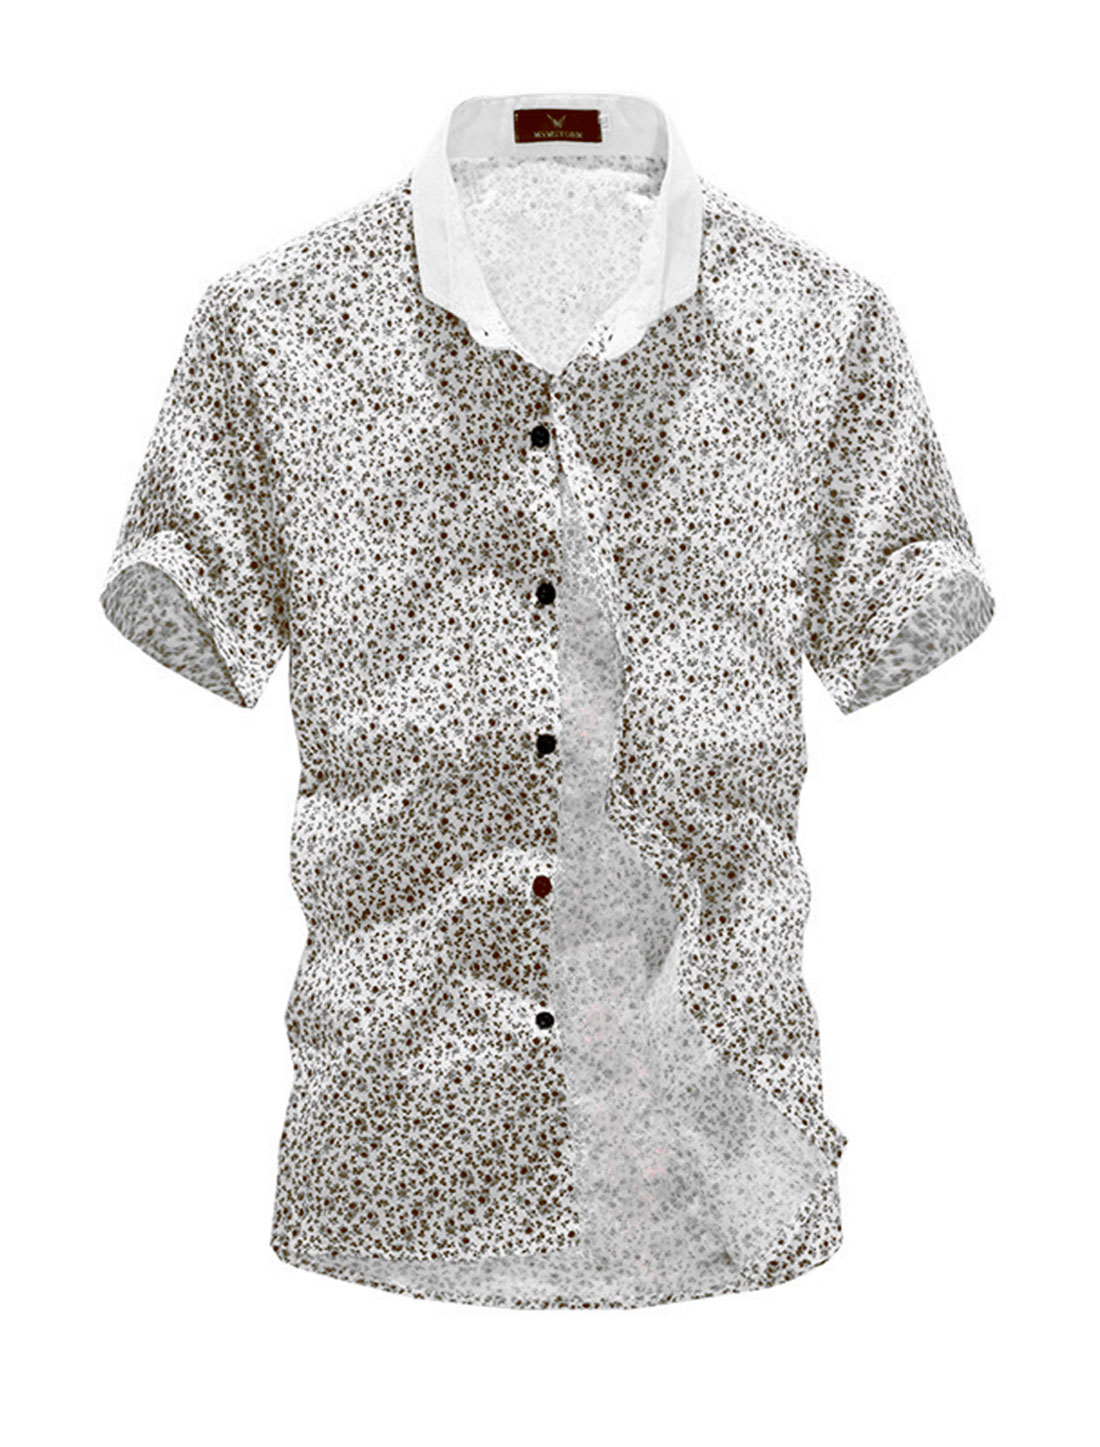 Men Buttons Closure Summer Chic Floral Top Shirt White Coffee M